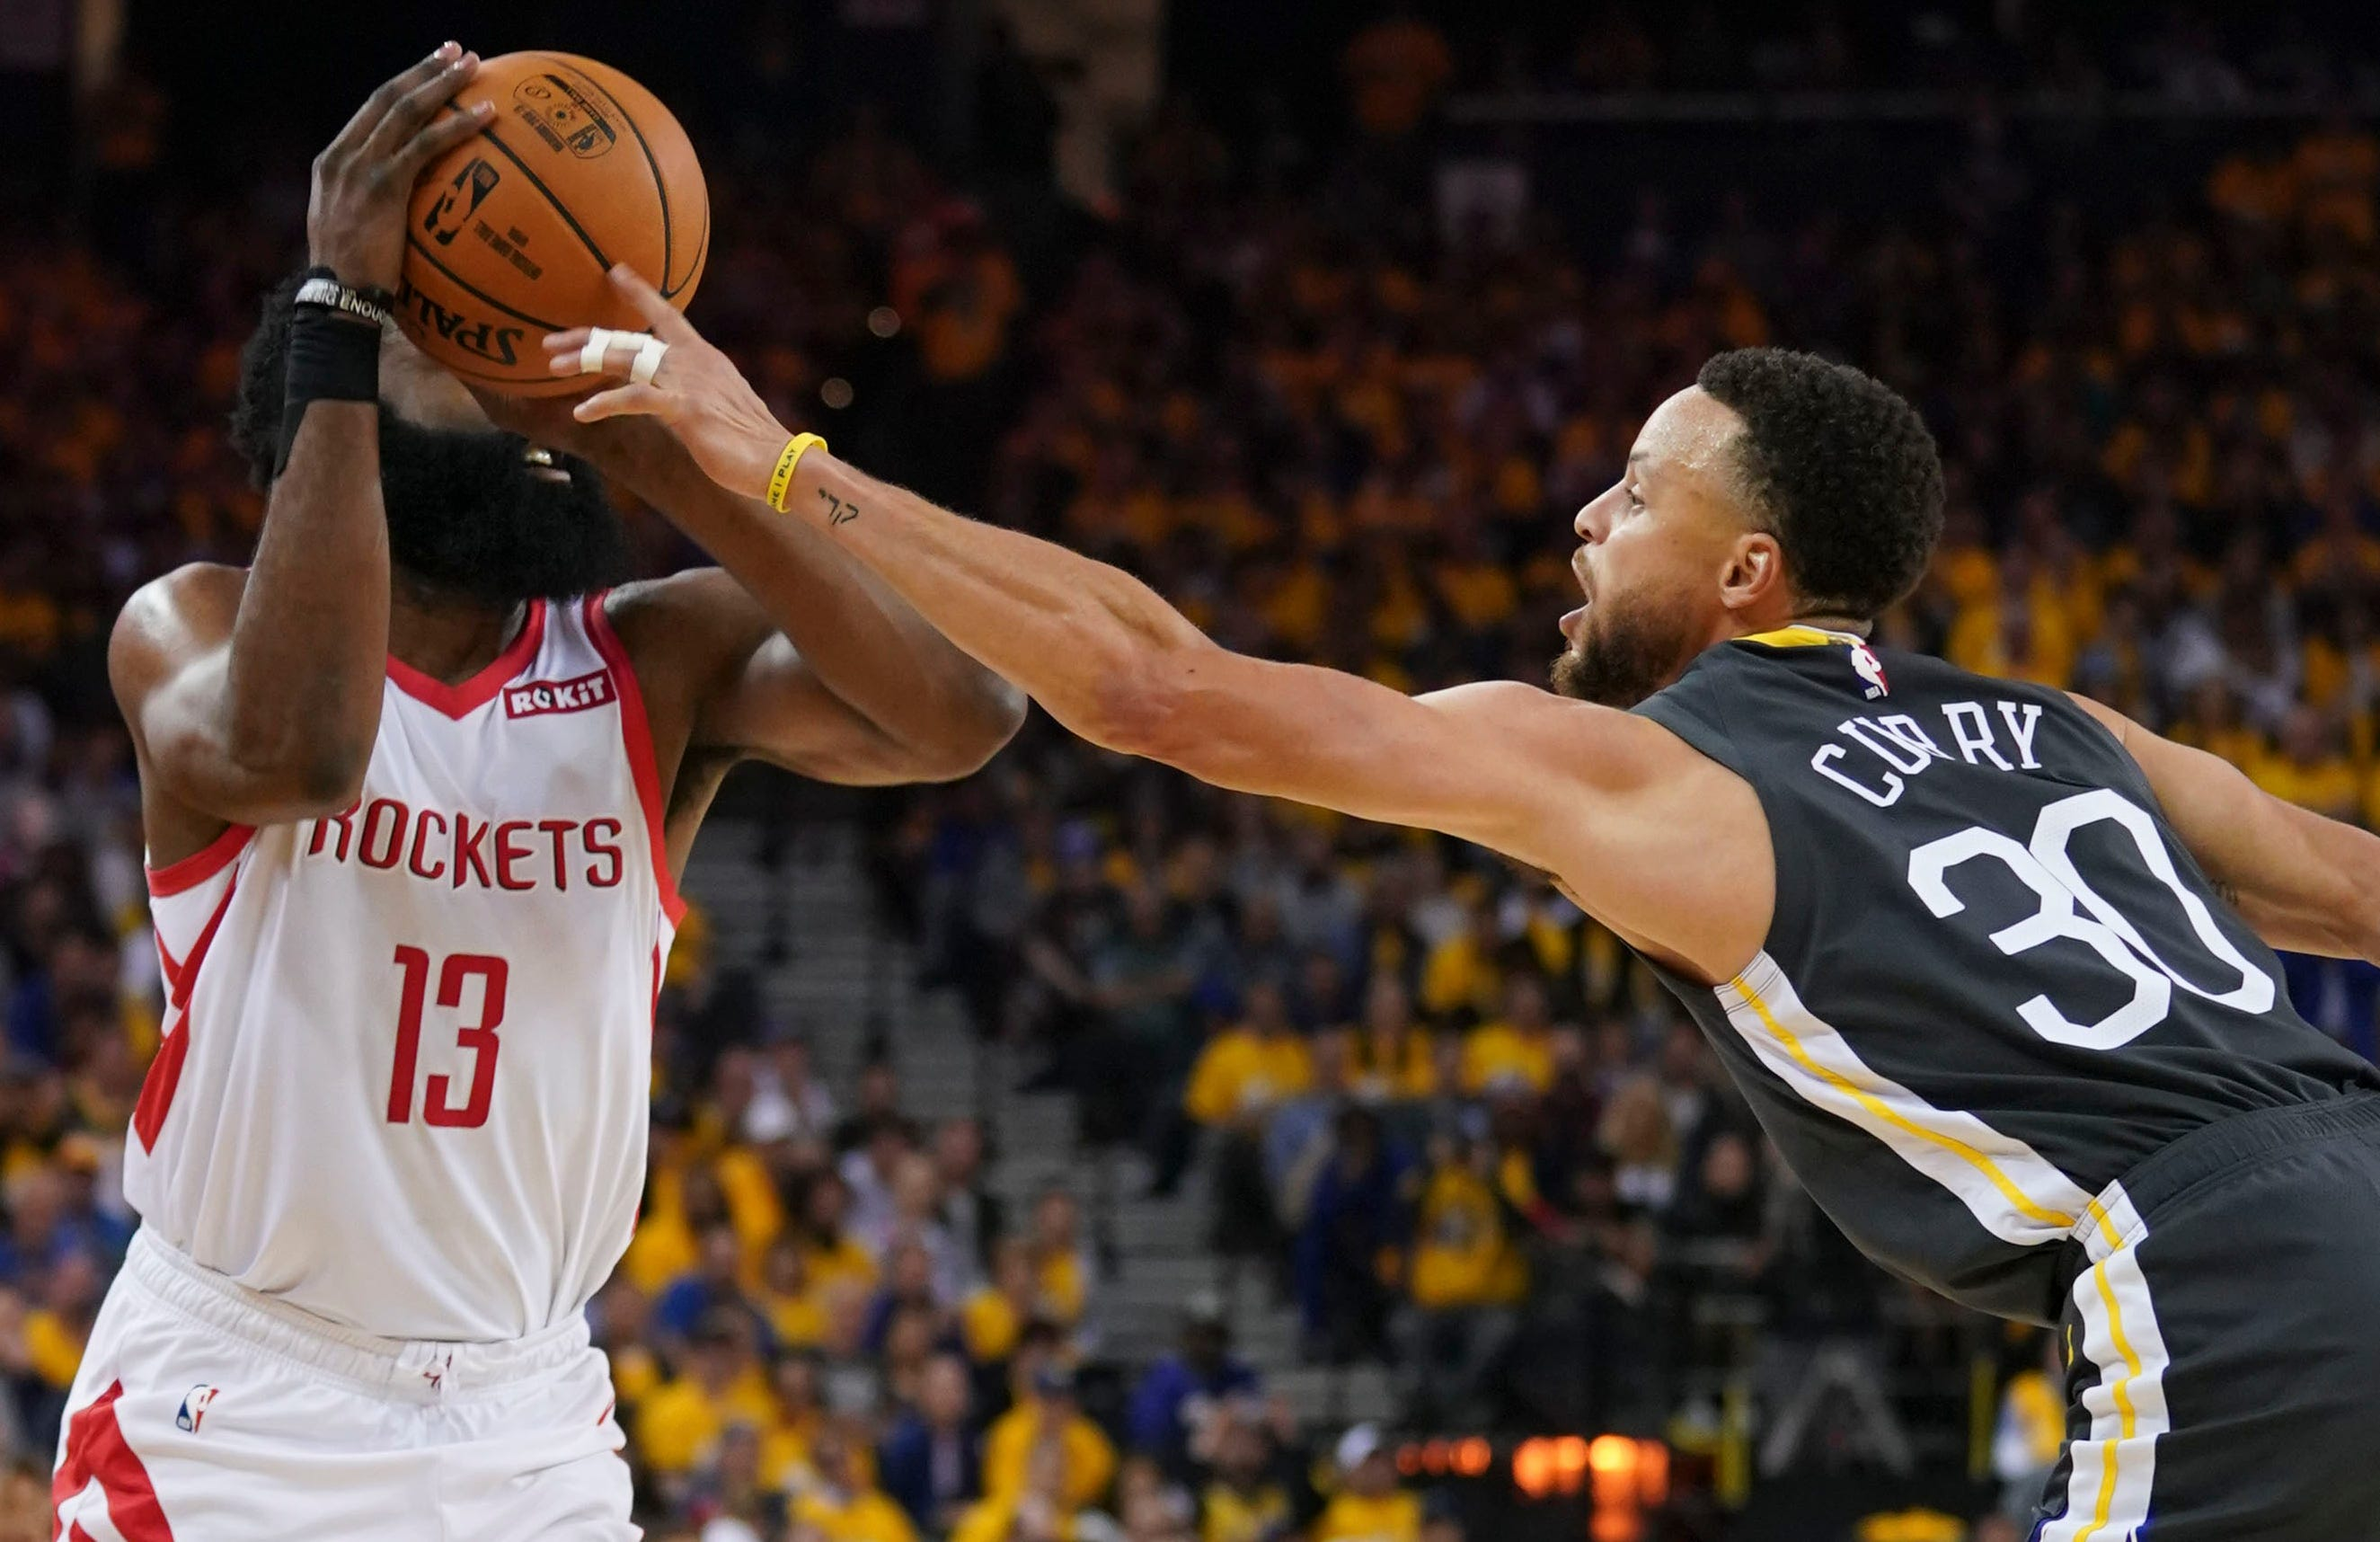 April 30: Golden State Warriors guard Stephen Curry blocks the shot of Houston Rockets guard James Harden during the second quarter in Game 2.